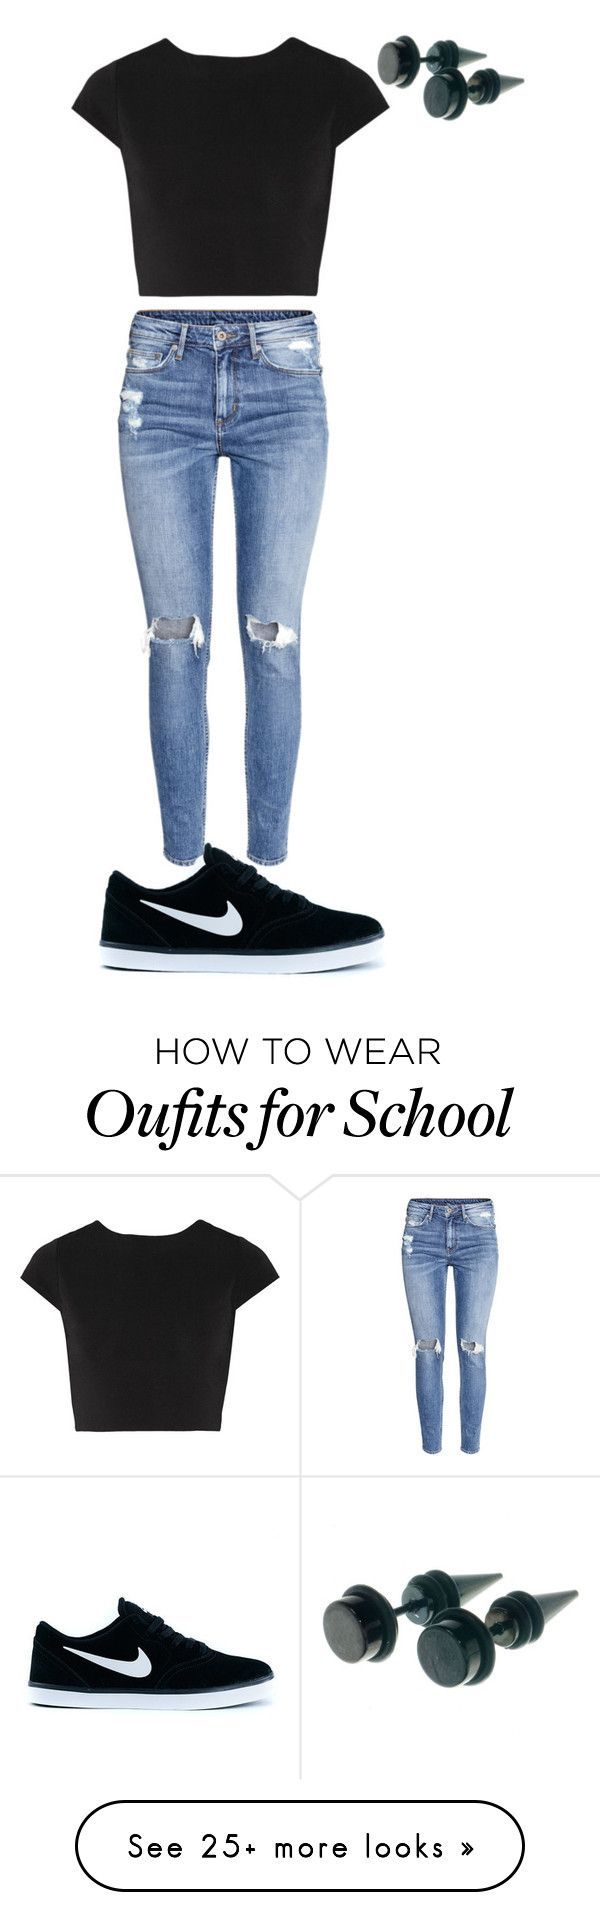 """Usual outfit for school"" by cruzesmeralda on Polyvore featuring Alice + Olivia, H&M and NIKE"